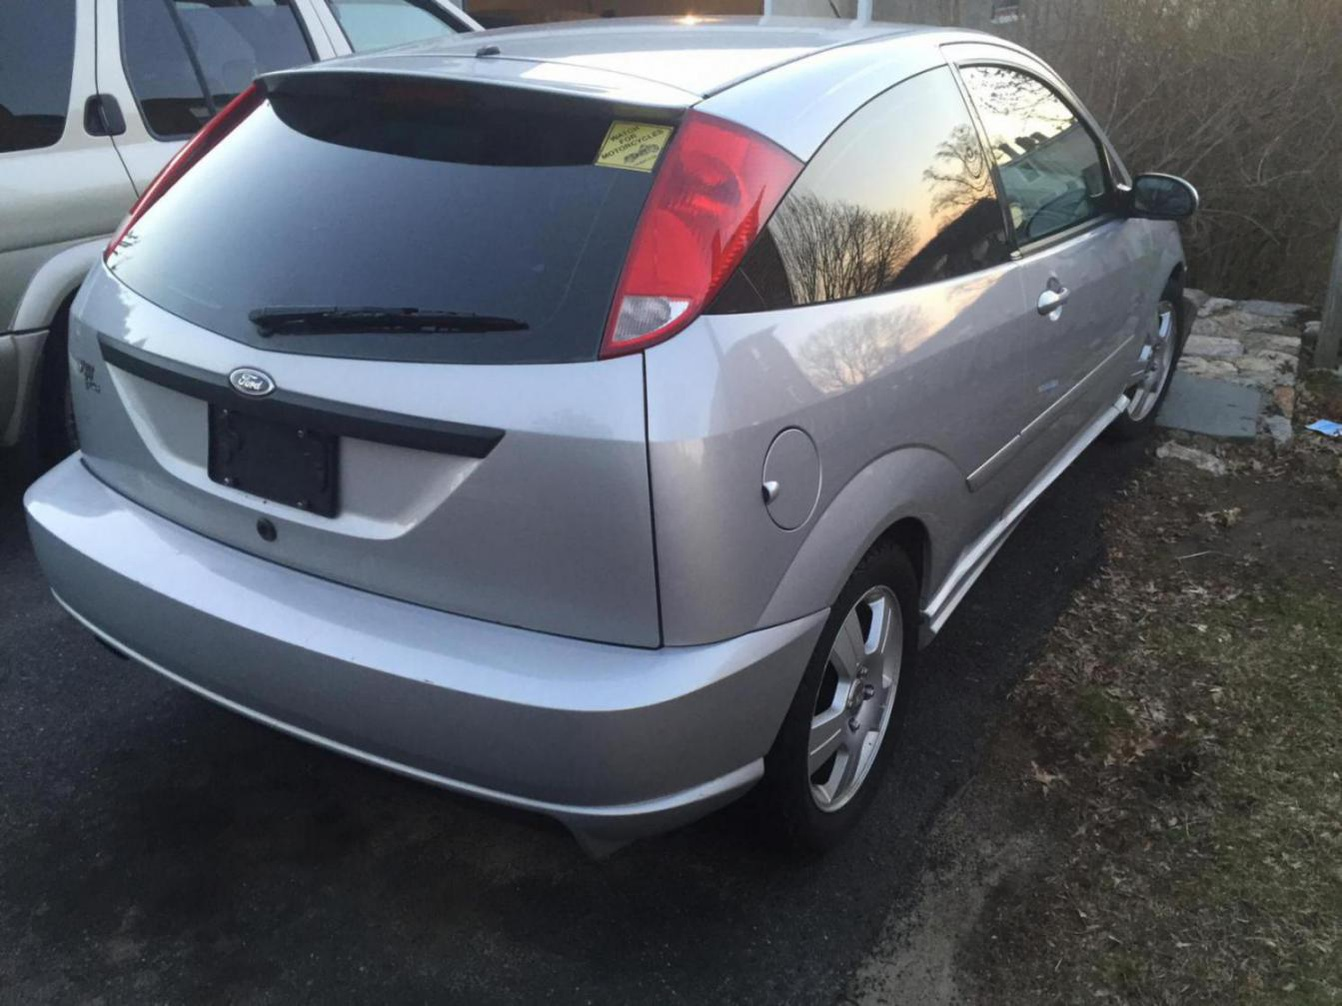 2003 Ford Focus Zx5 >> 2002 Ford Focus SVT for sale - Ford Focus Forum, Ford ...